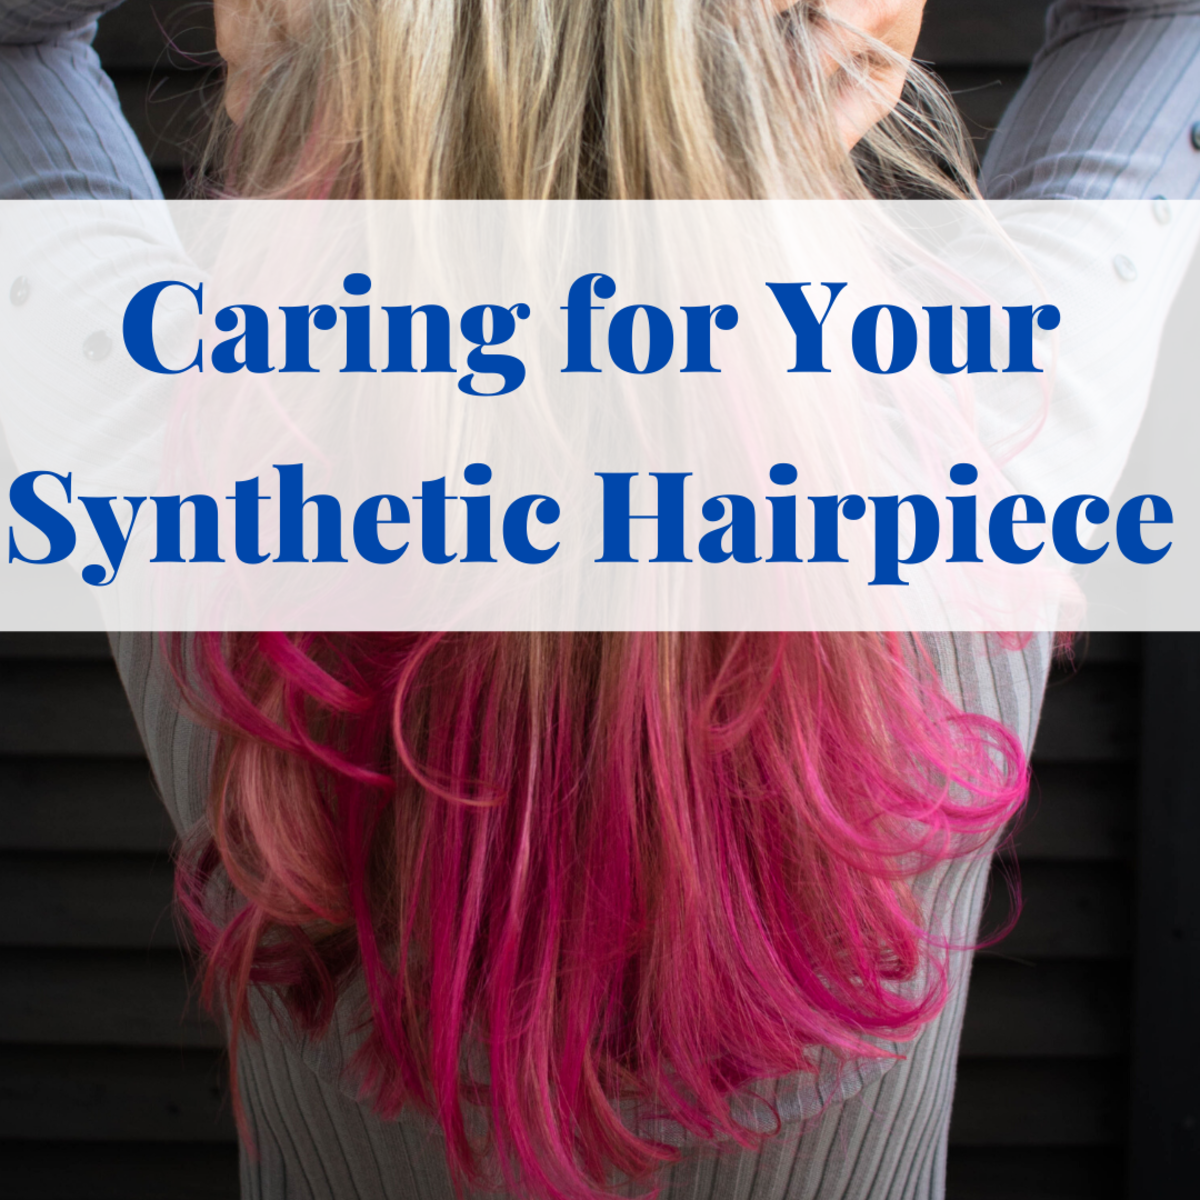 How do you care for a synthetic hairpiece?